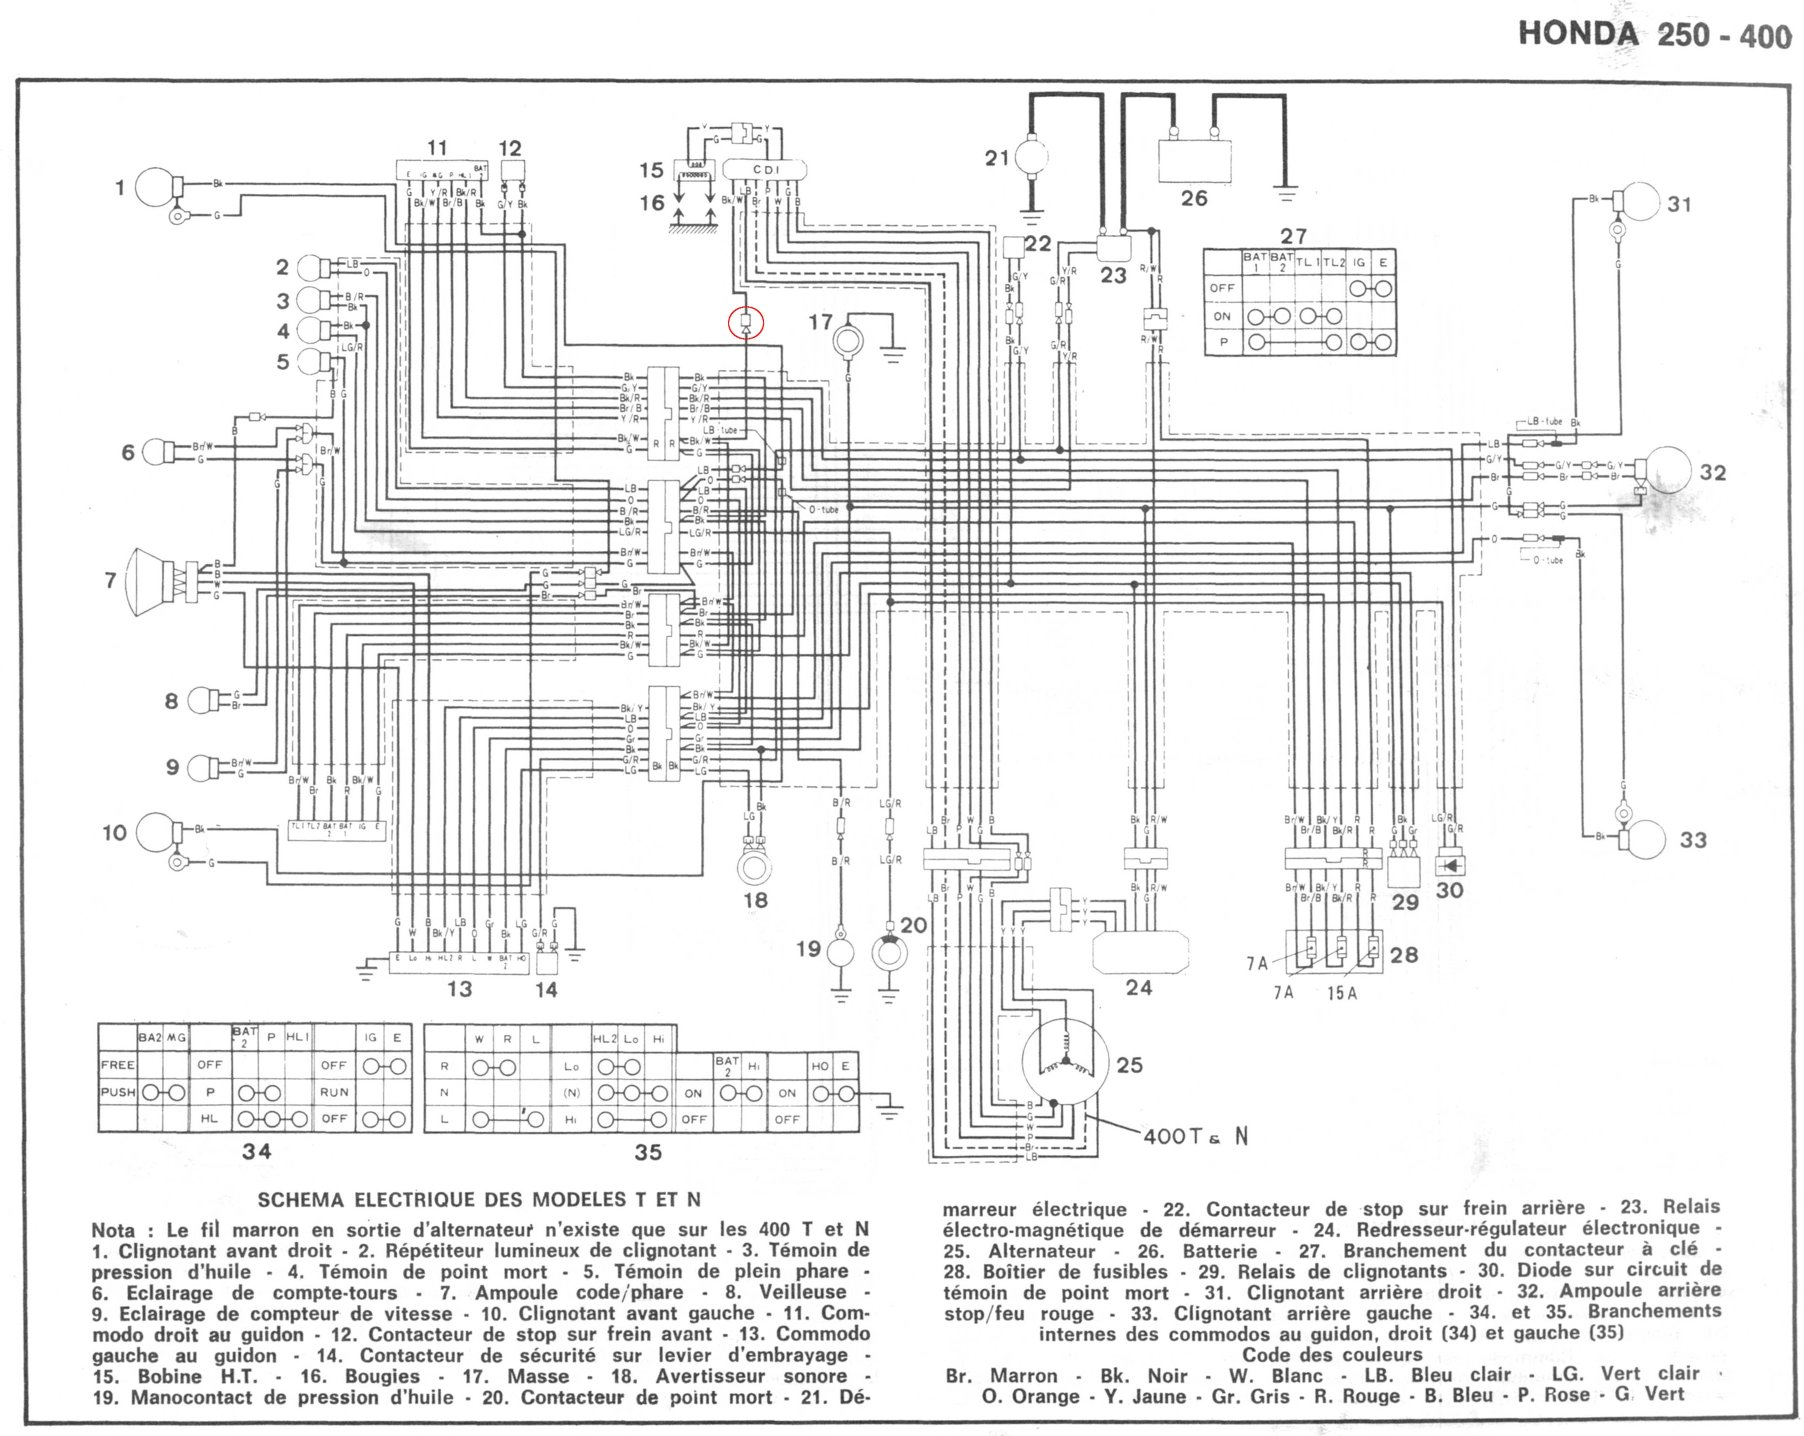 drz 400 wiring diagram crf 50 wiring diagram wiring